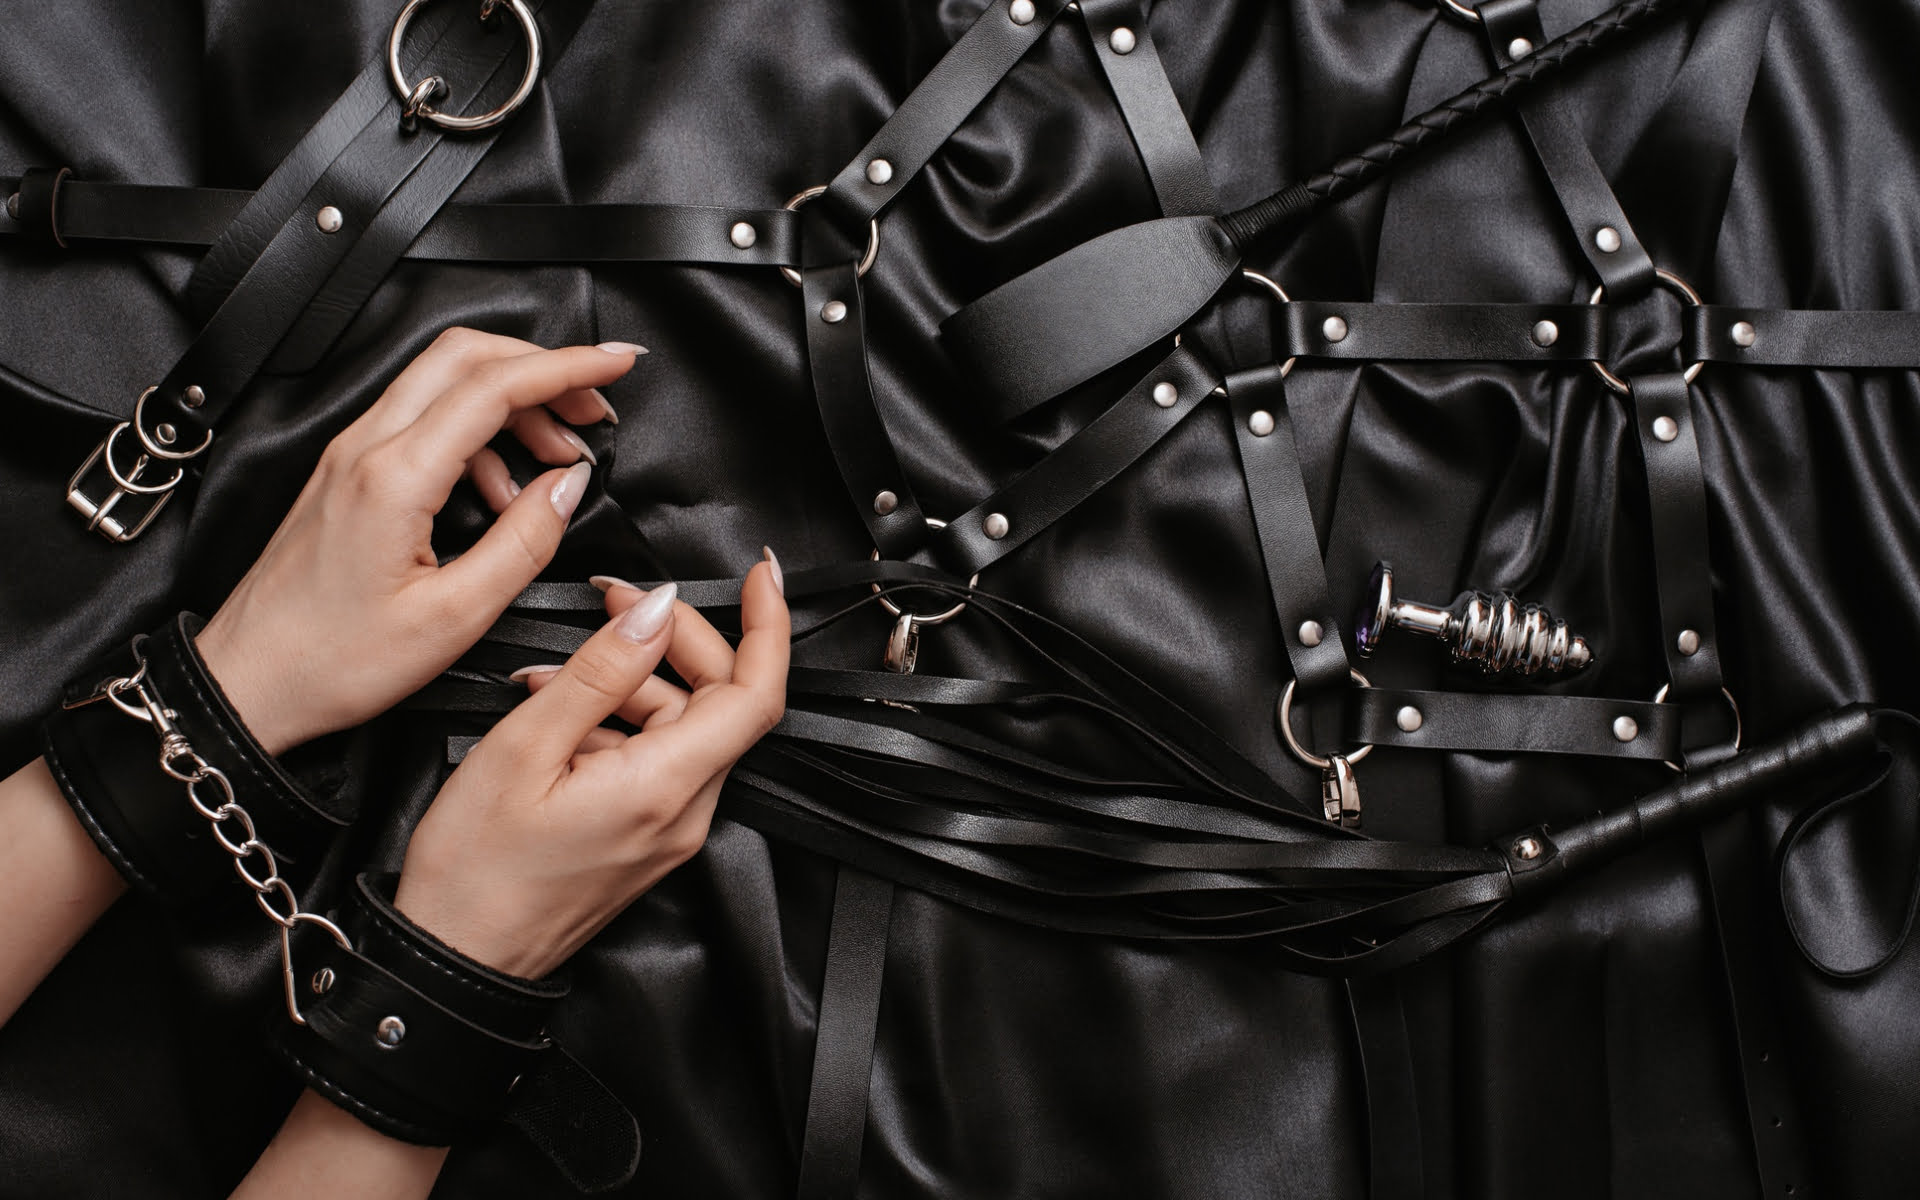 how-to-use-bed-restraints-bondage-bed-straps-guide-featured-image